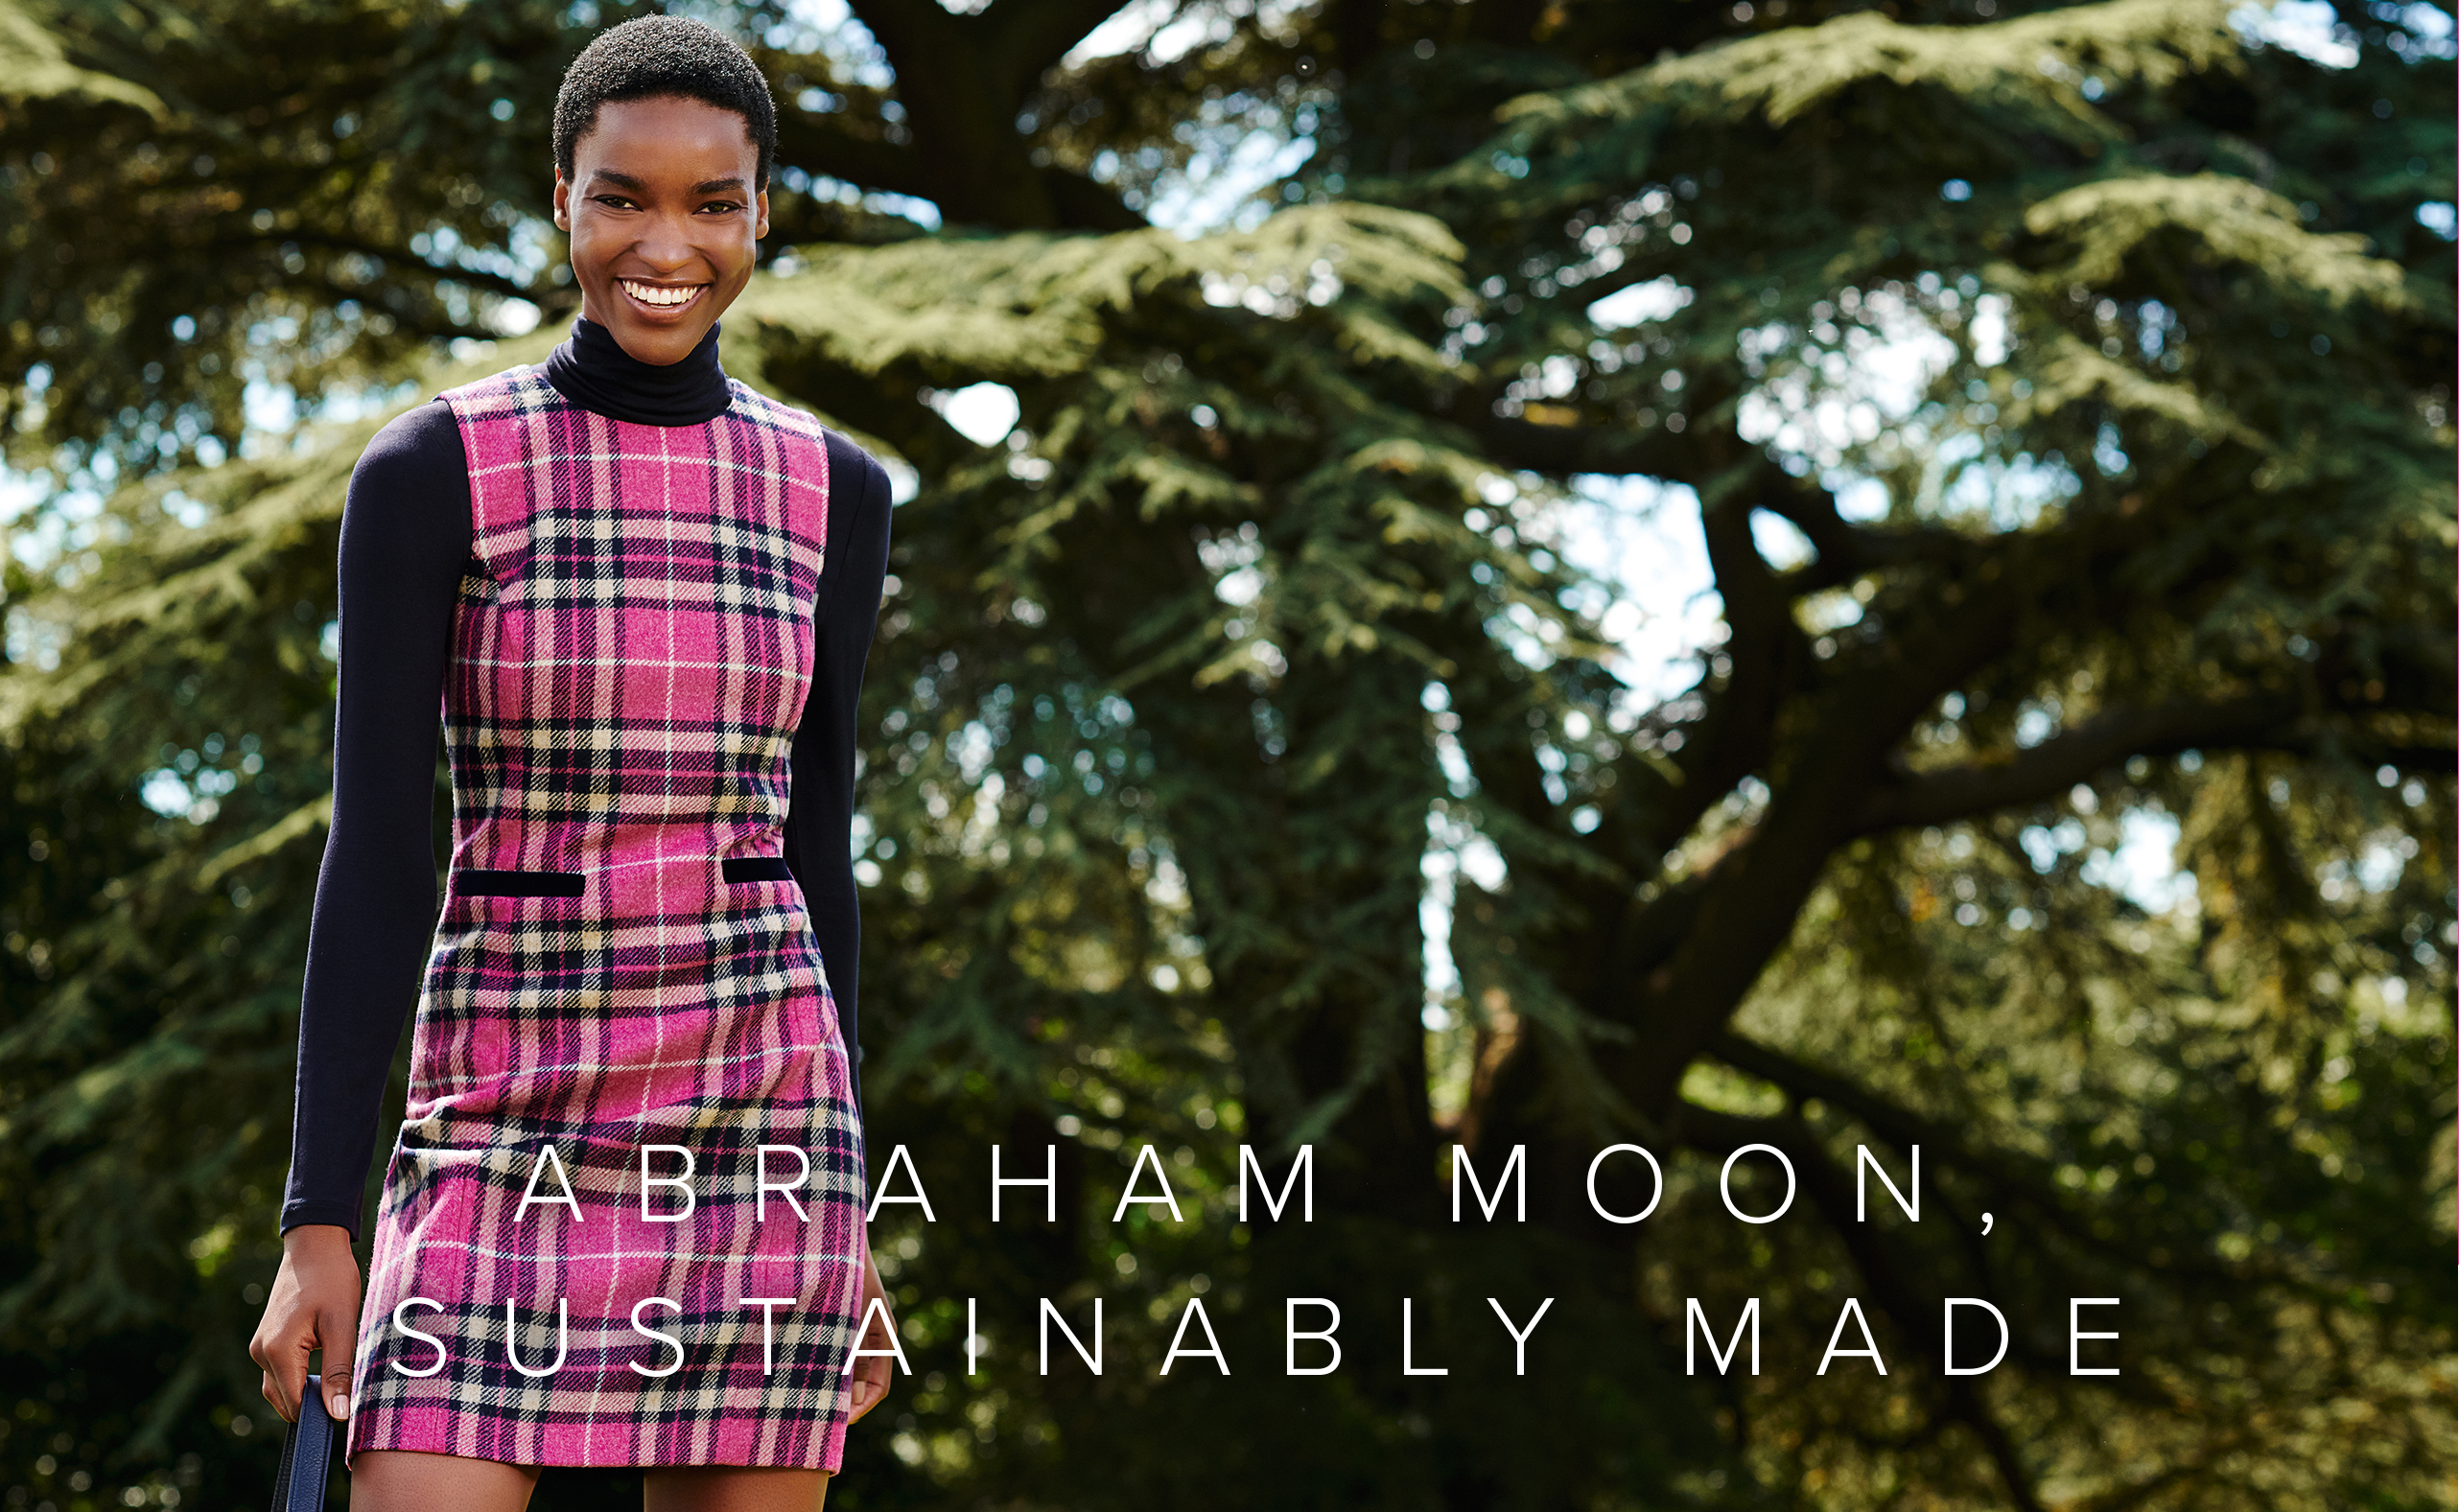 Alt text: Hobbs wool shift dress with a check pattern in pink shades made from Abraham Moon's British made sustainable wool fabric, layered over a navy blue turtleneck women's jumper styled with a leather tote bag.